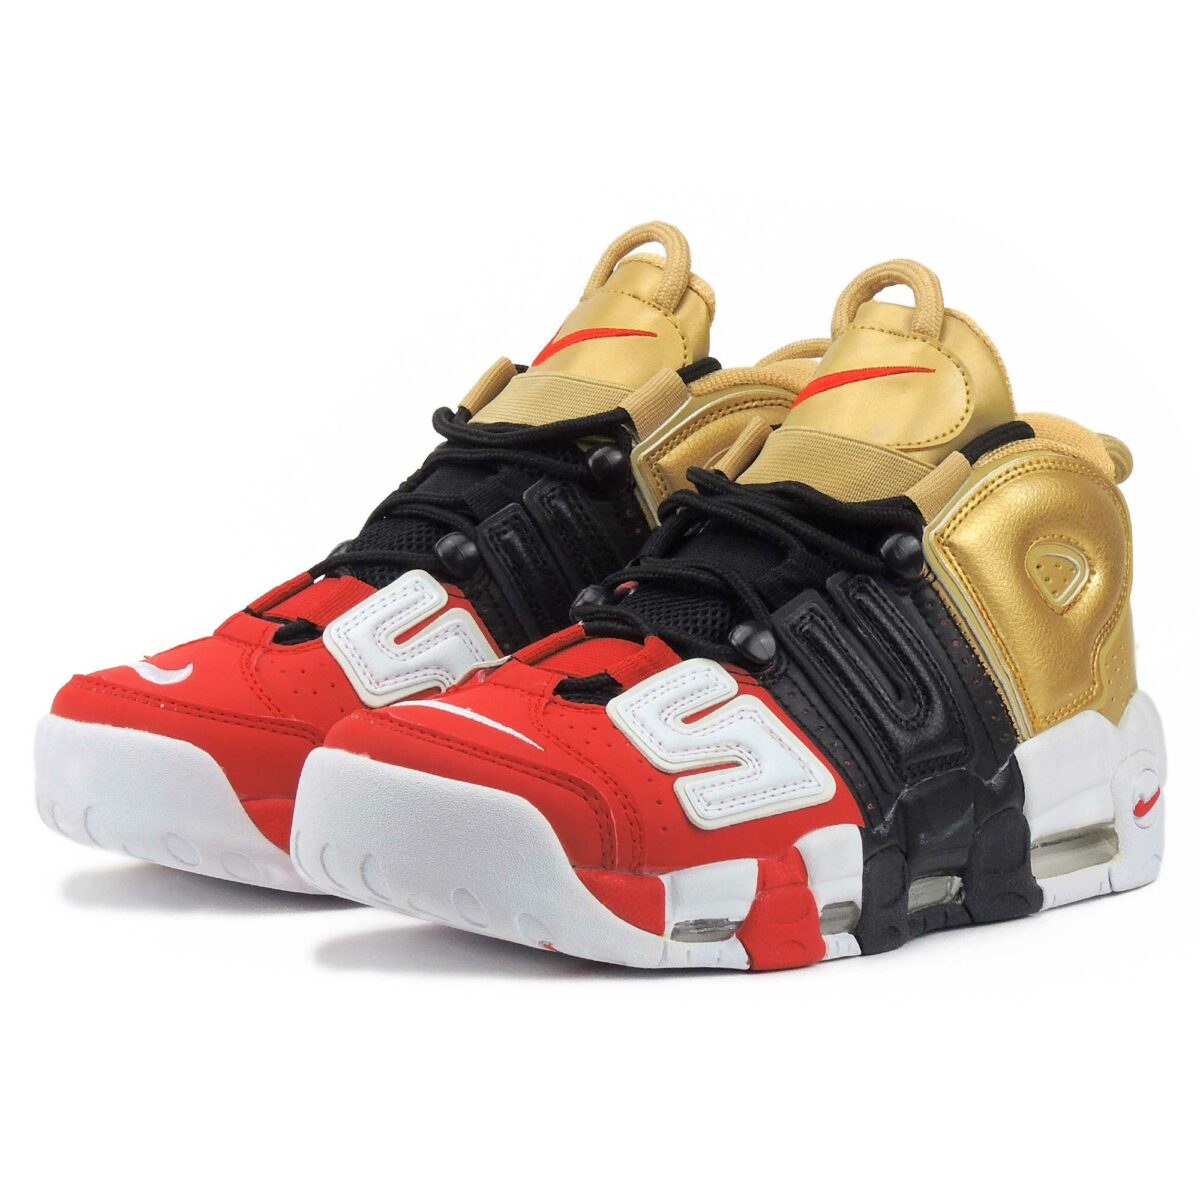 nike air more uptempo red black gold 902290_002 купить